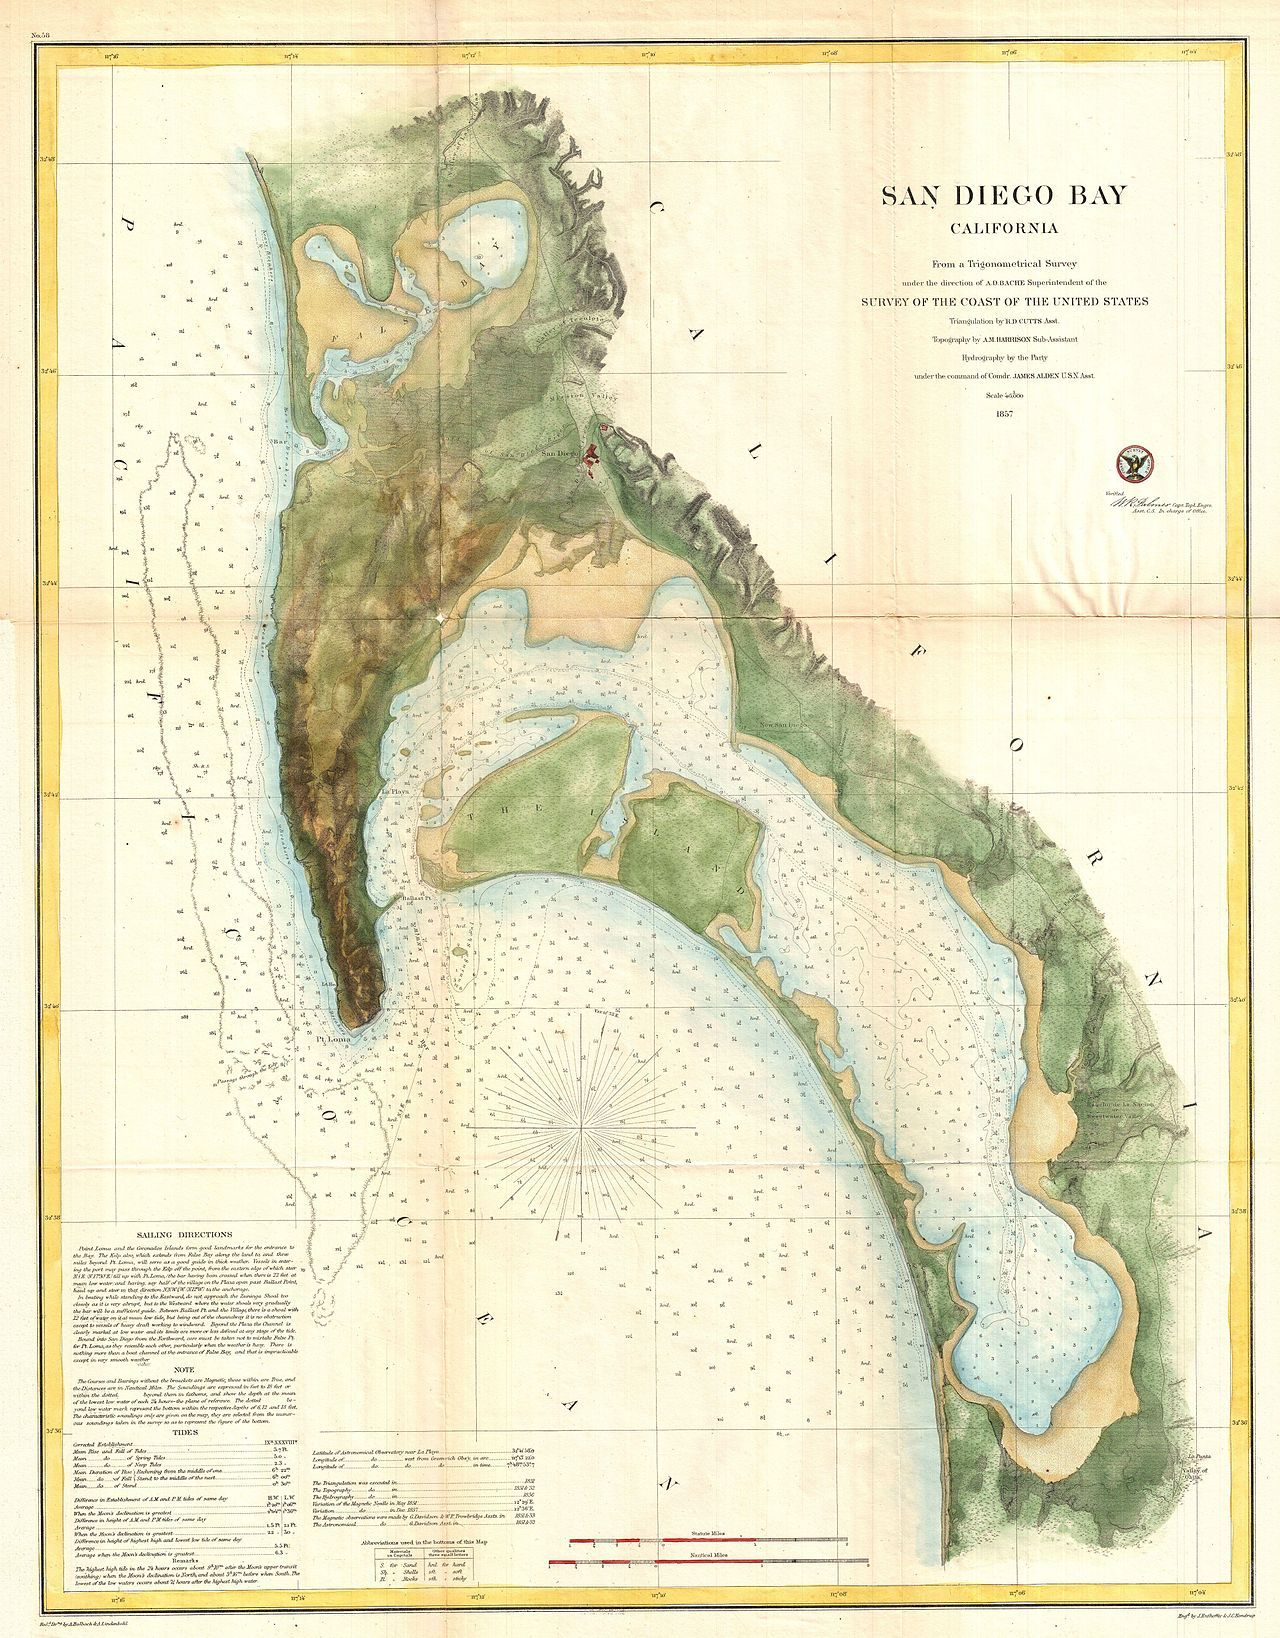 1857 U.S.C.S. Map of San Diego Bay, California - Geographicus ...